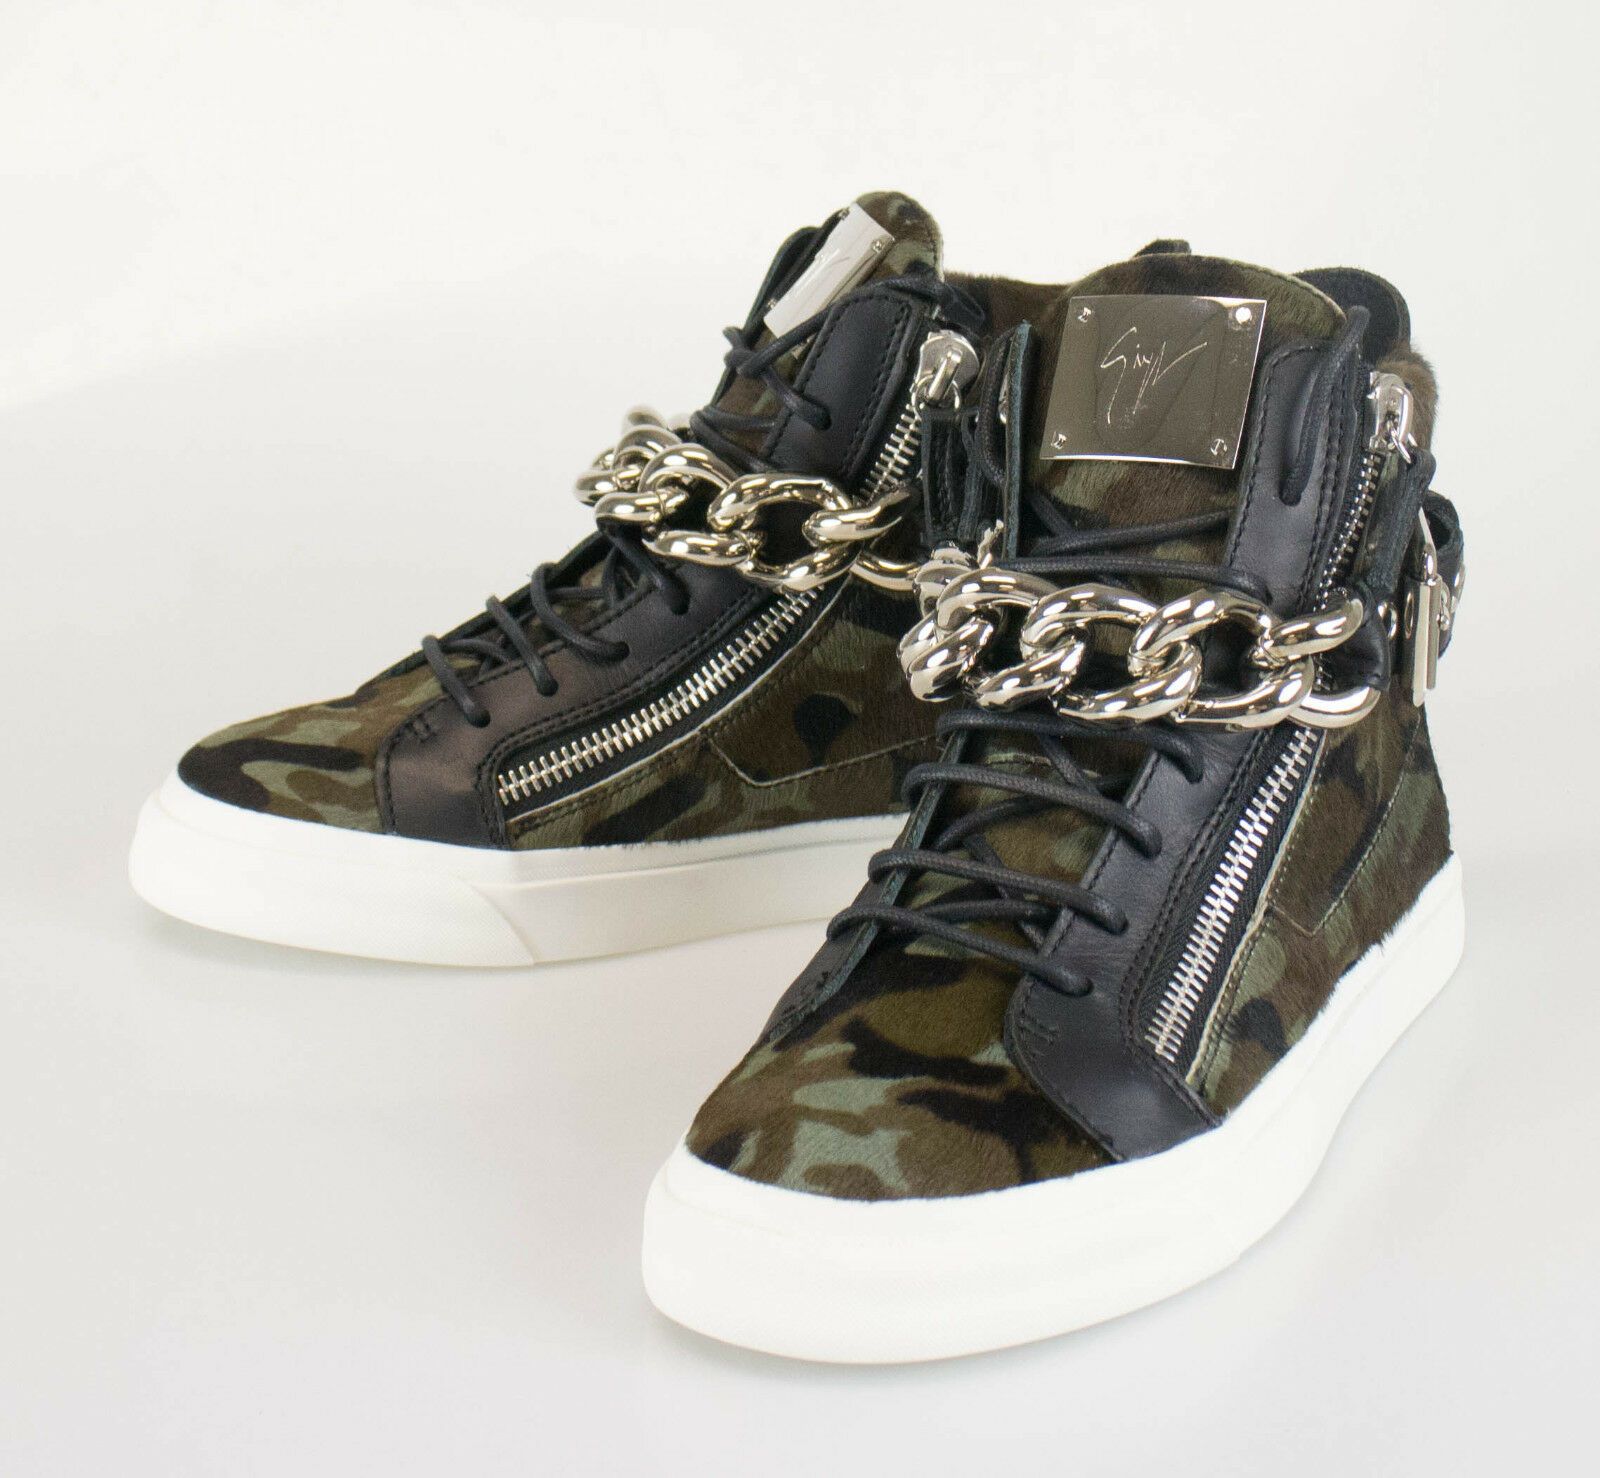 ae74c60106e87 GIUSEPPE ZANOTTI London Camuf Hi-Top Sneakers shoes Size 7 40 EU US New.  npjupt5842-Trainers